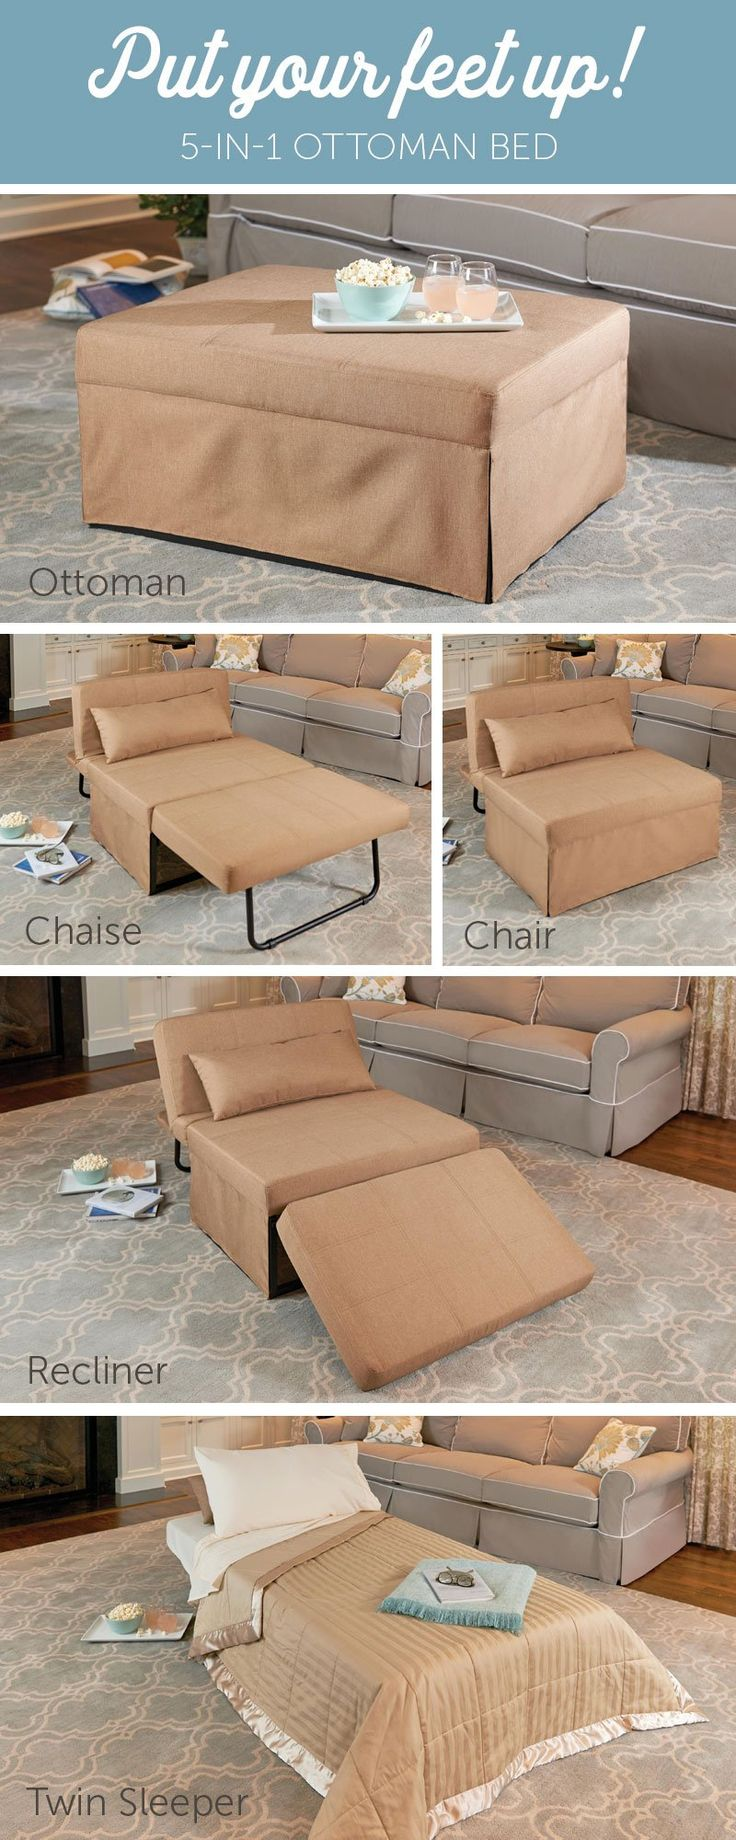 best 25 chair bed ideas on pinterest chair sofa bed japanese sofa and diy japanese furniture. Black Bedroom Furniture Sets. Home Design Ideas